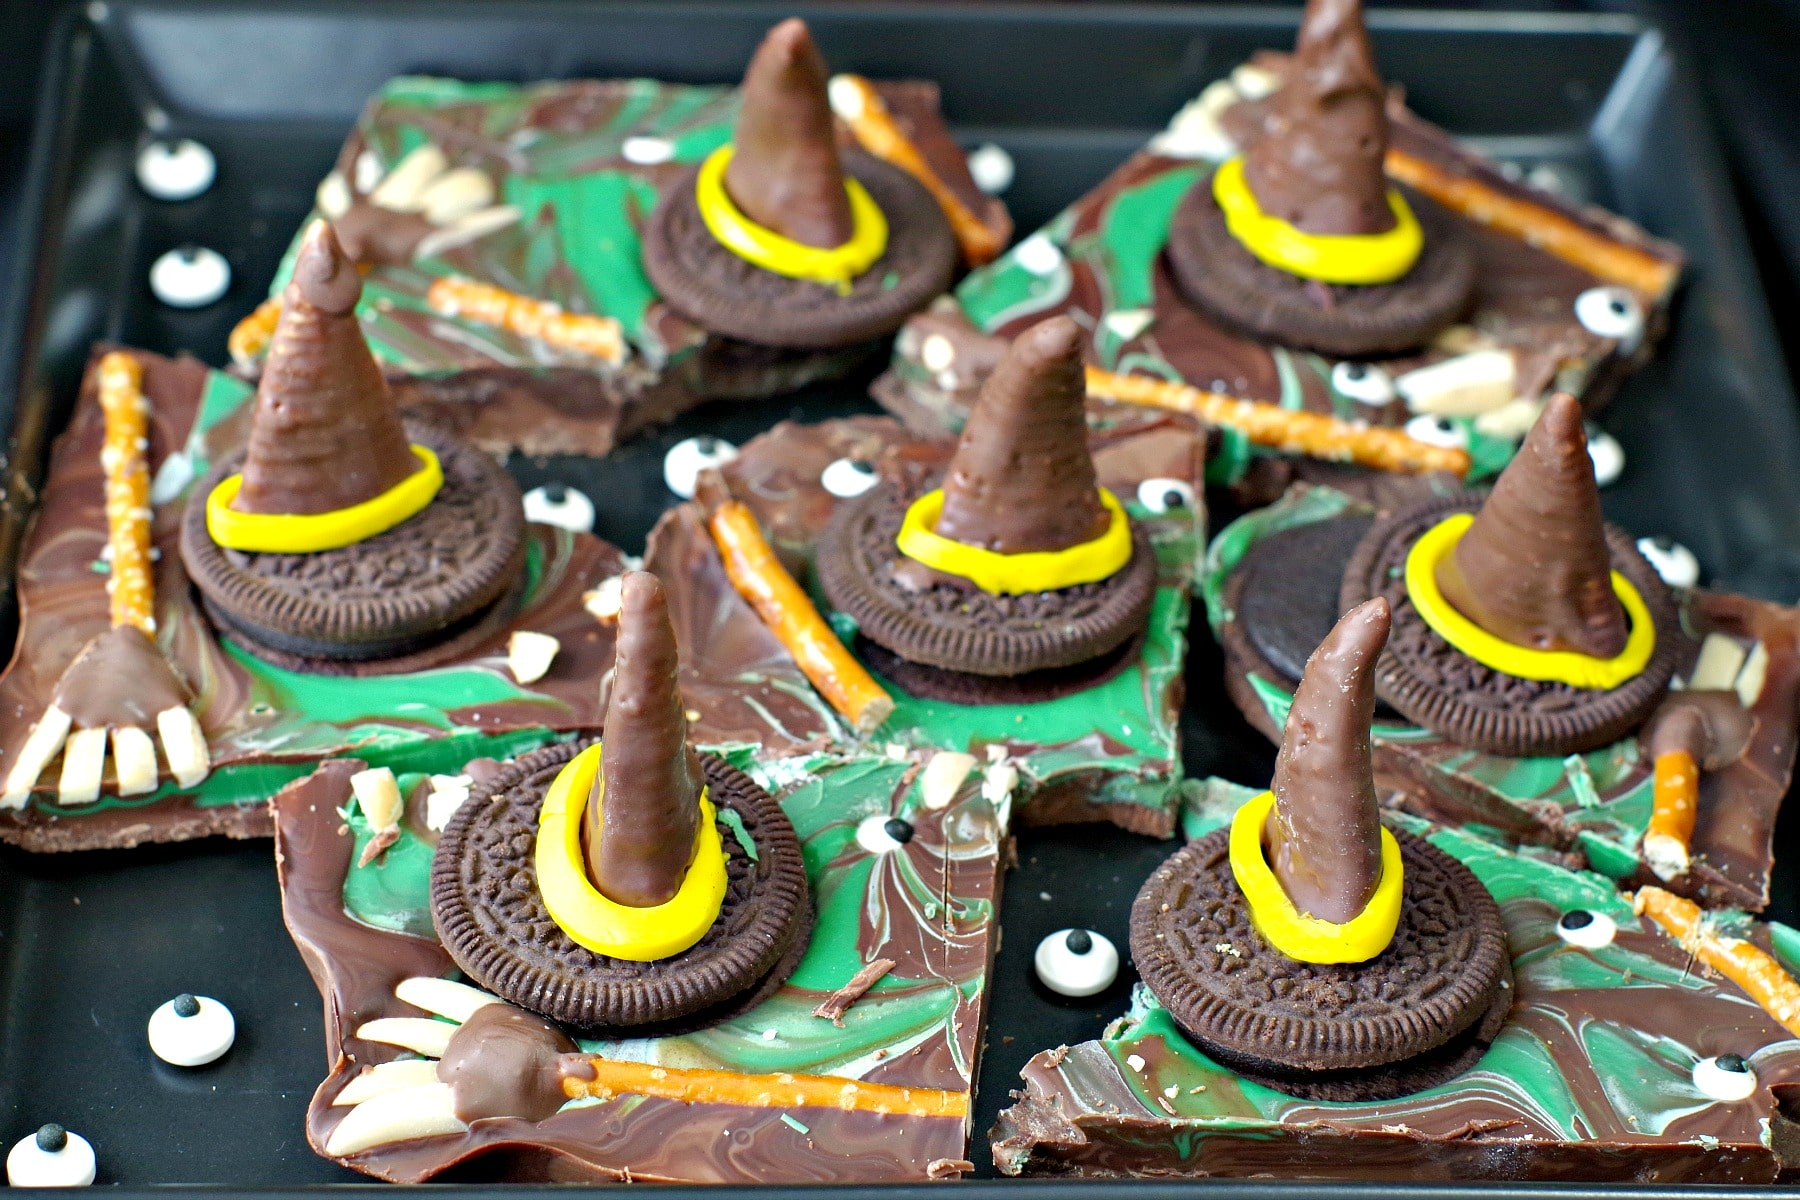 Melting Witch Halloween Chocolate Bark broken into pieces on black platter with extra candy eyes scattered on plate